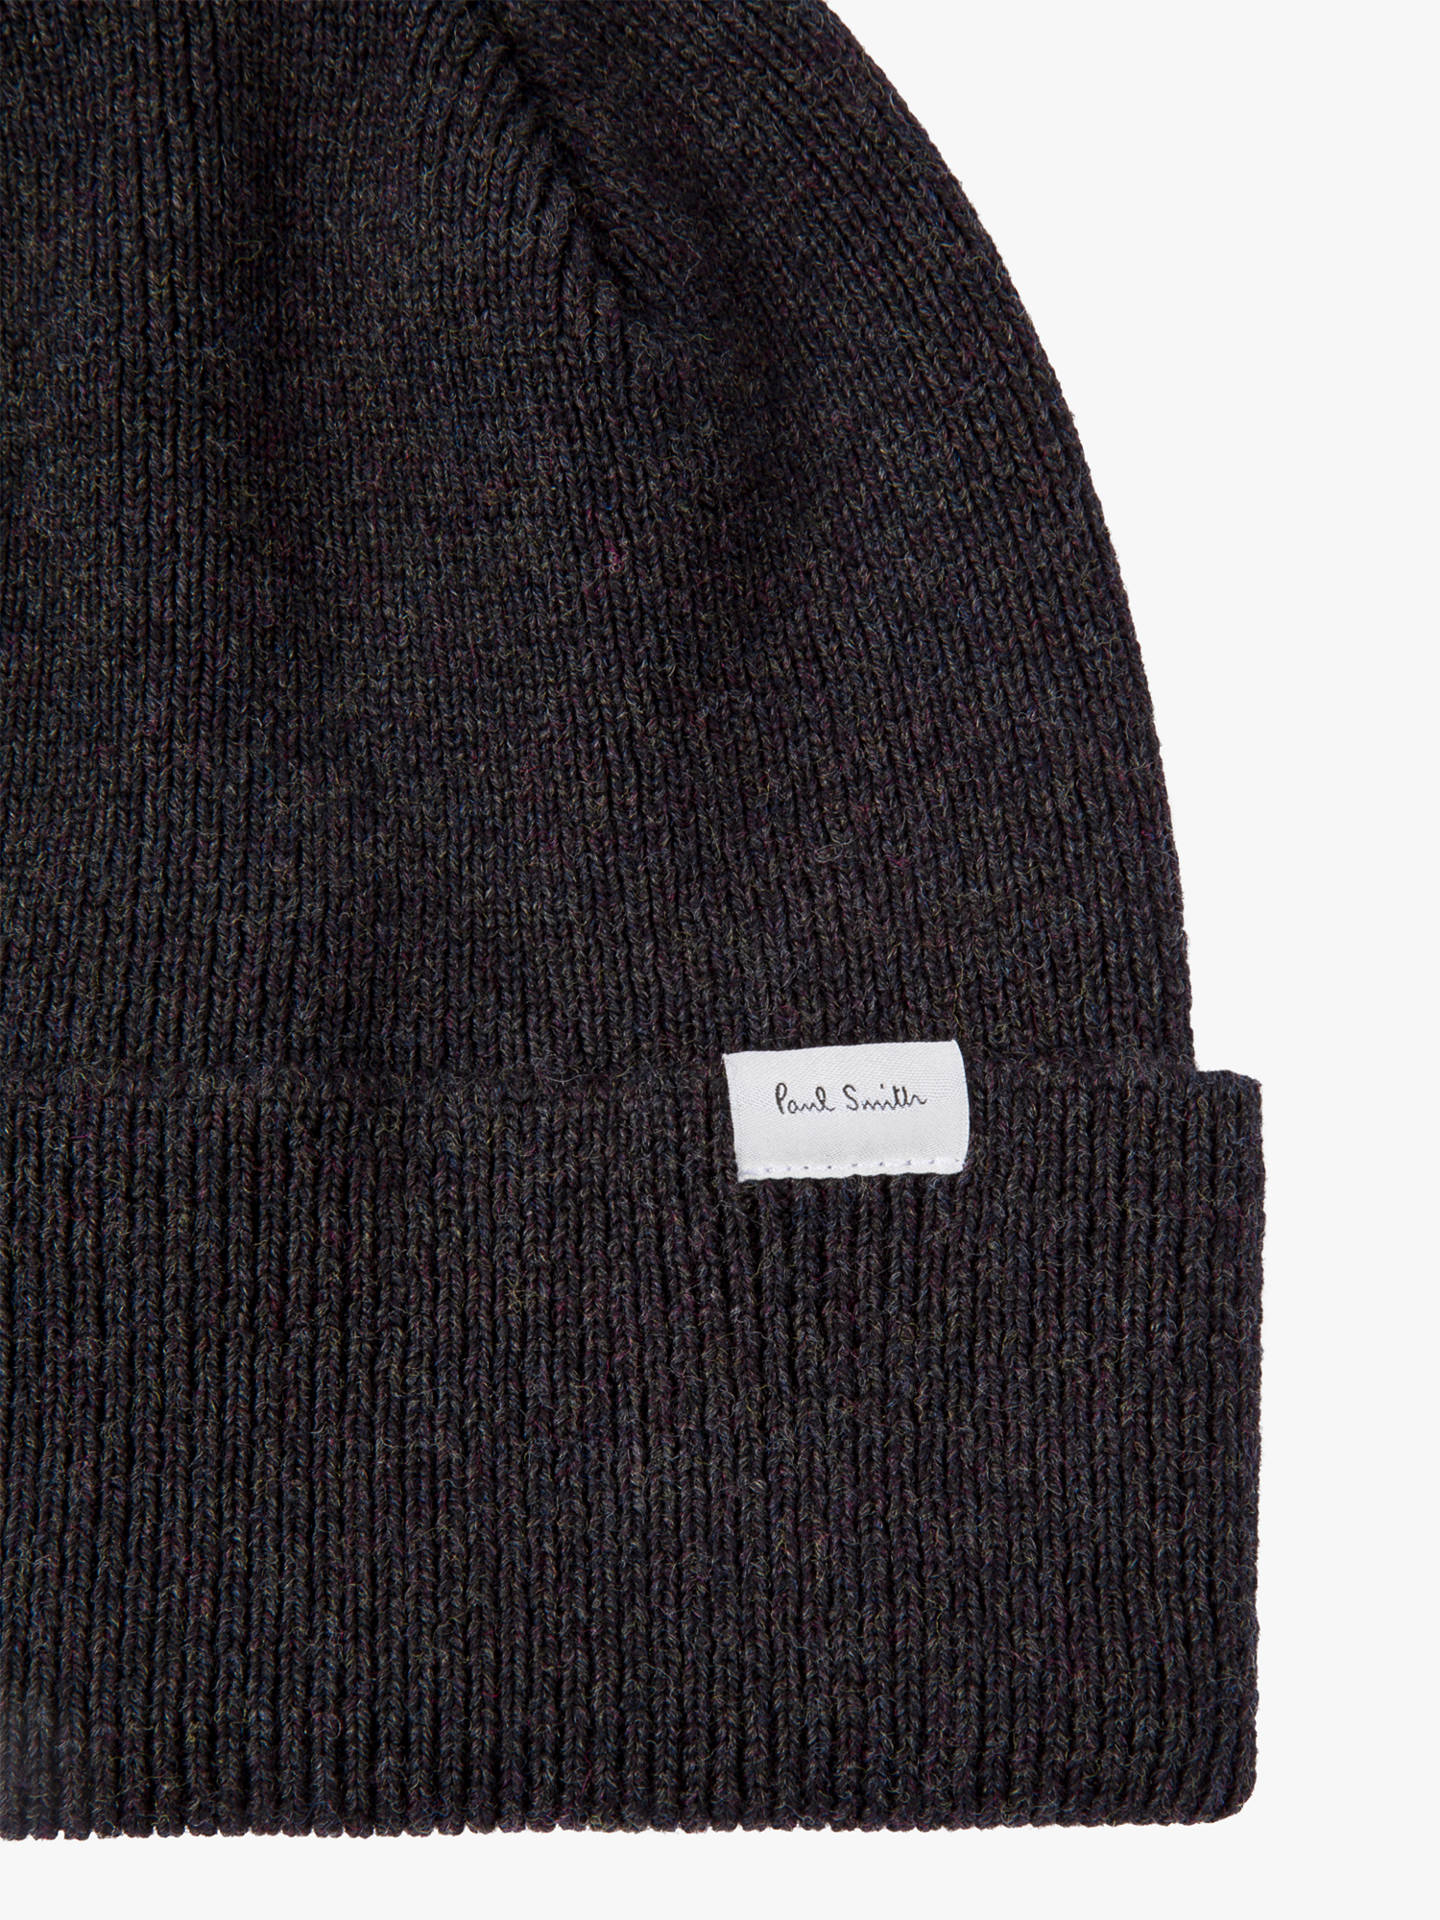 ... BuyPaul Smith Graphite Wool Beanie 861a1932bb0